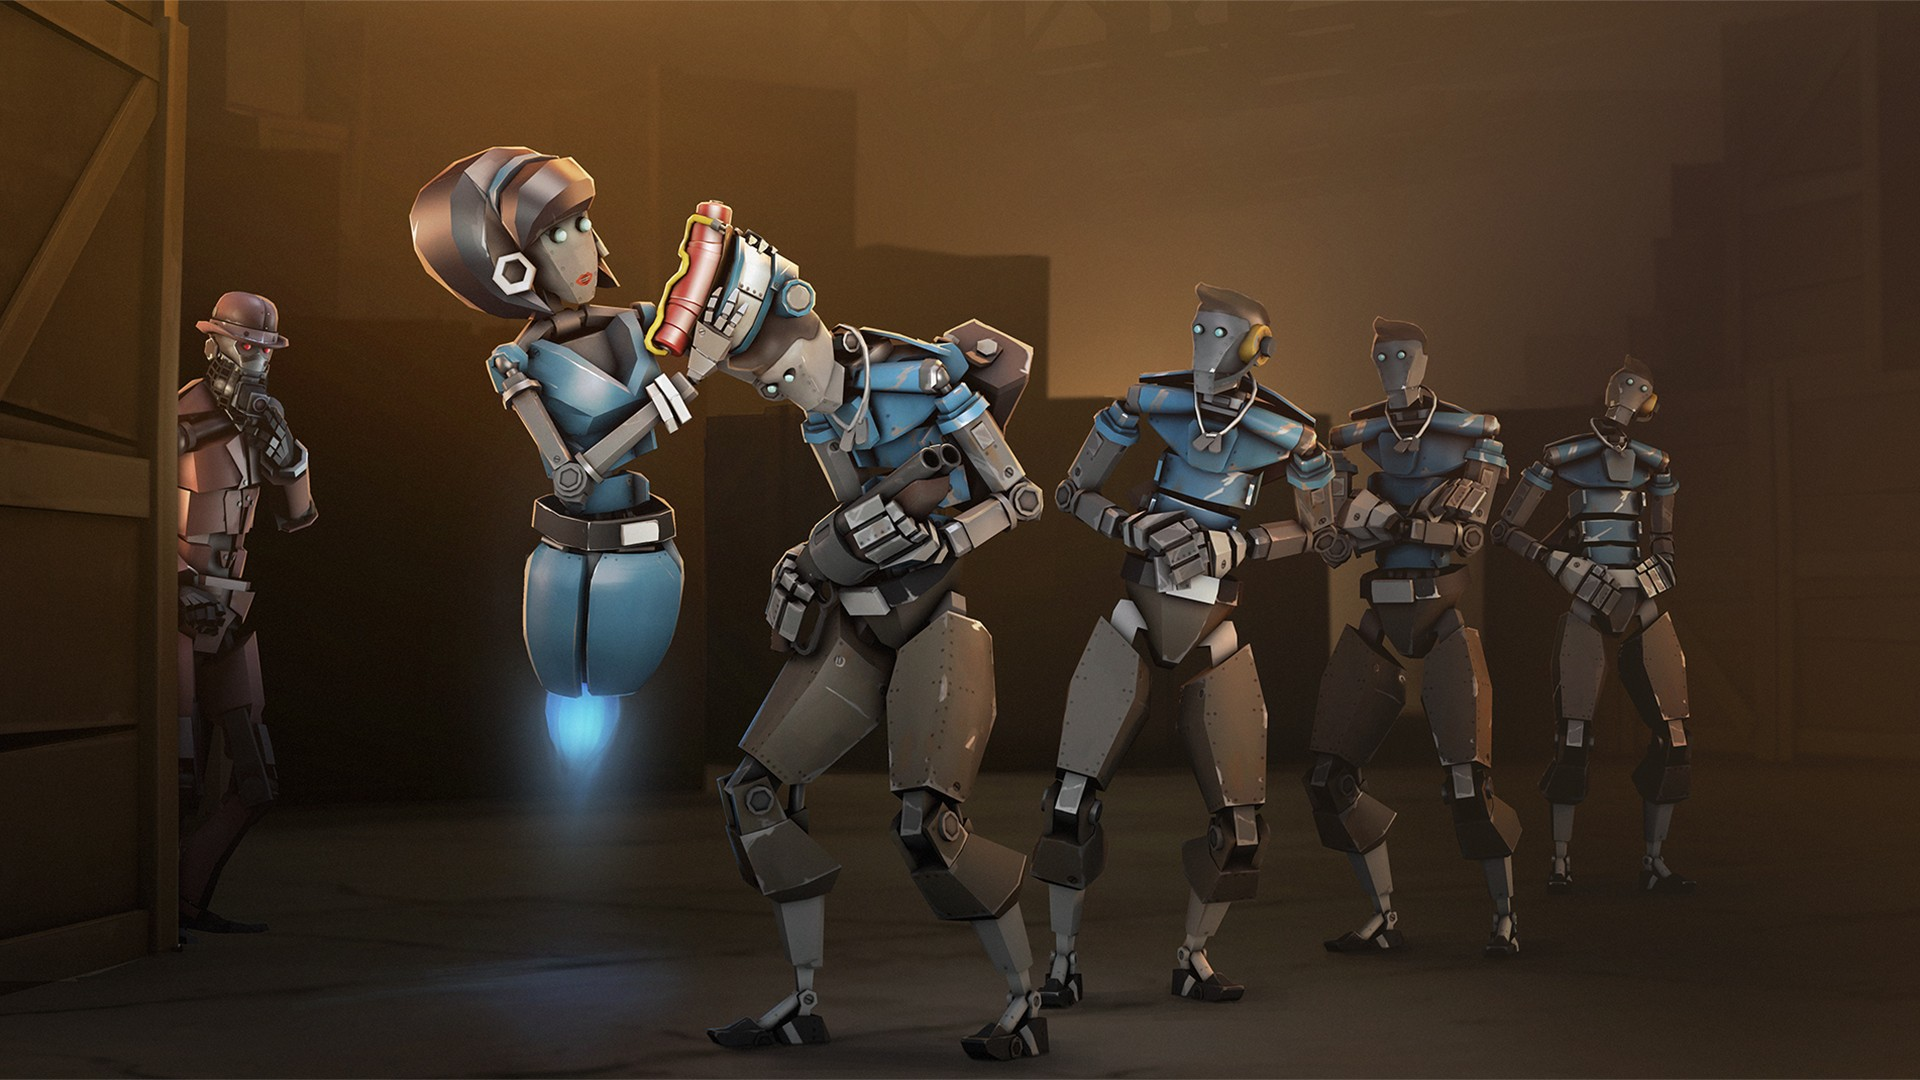 team fortress 2 hd wallpaper background image